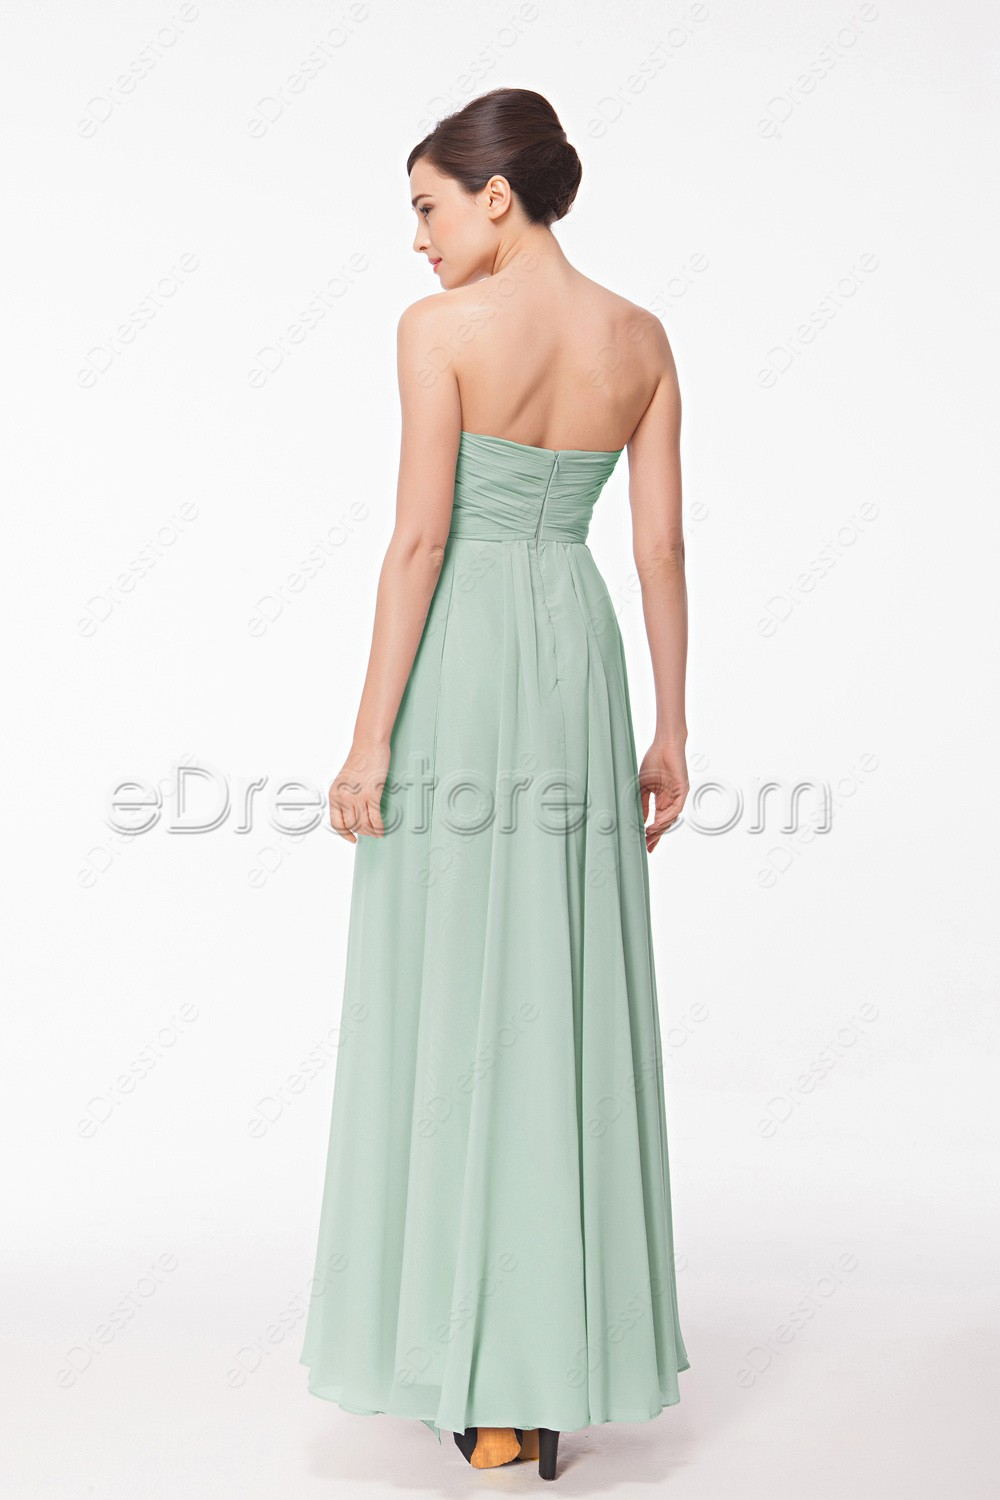 Sweetheart pastel green bridesmaid dresses for Pastel green wedding dress